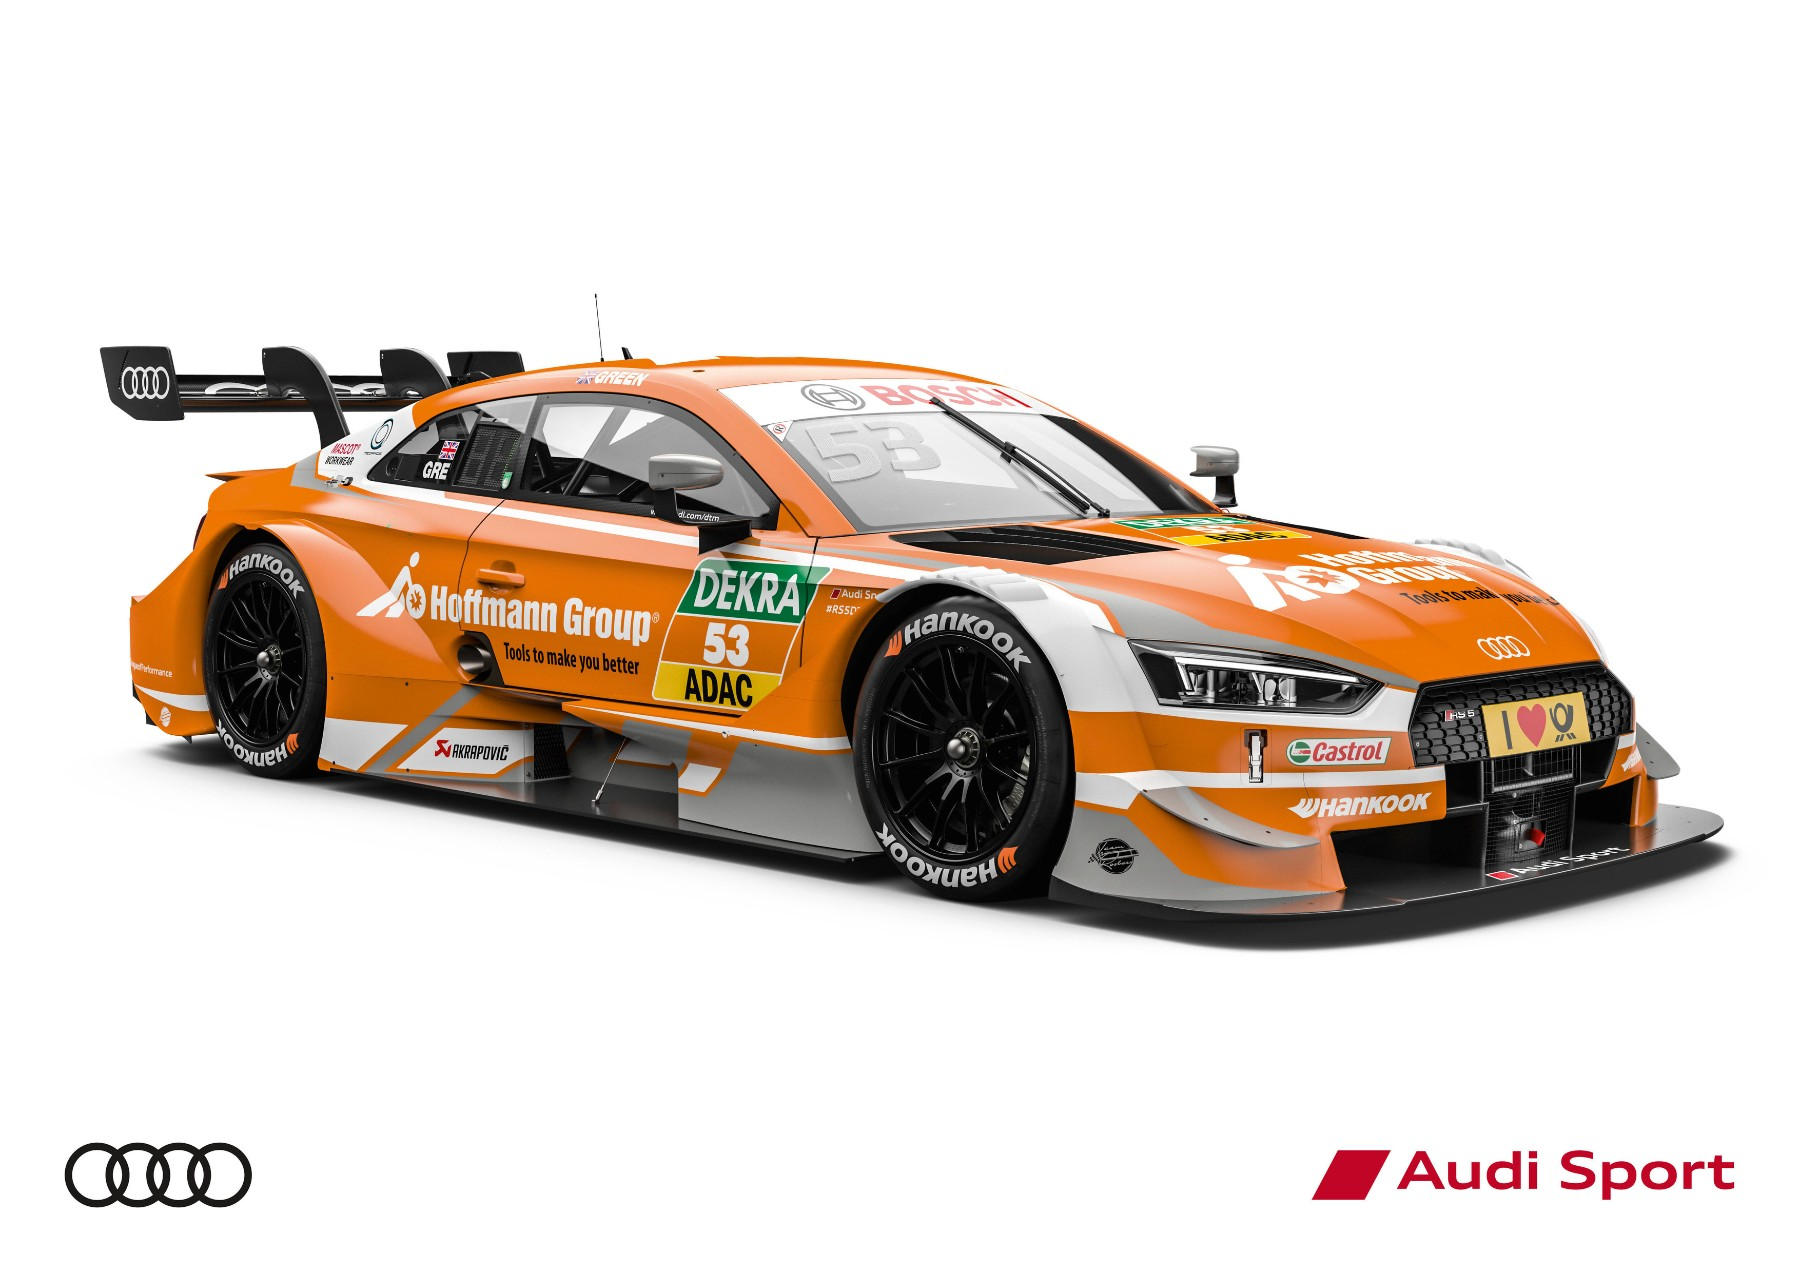 Hoffmann Group Audi RS 5 DTM #53 (Audi Sport Team Rosberg), Jamie Green - Audi Club North America